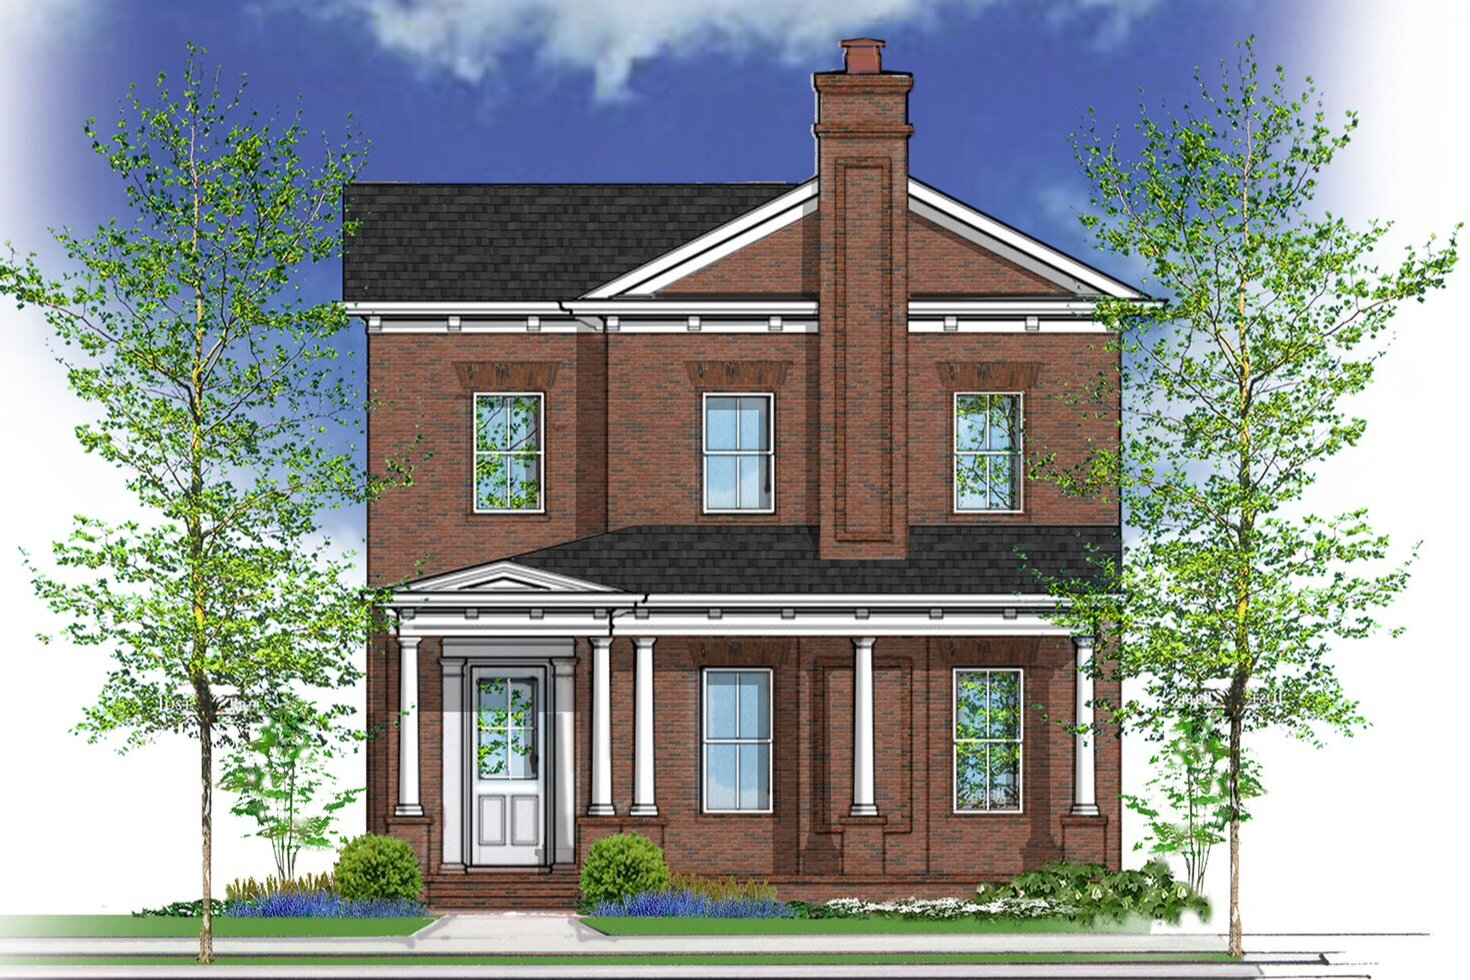 drawing of brick house